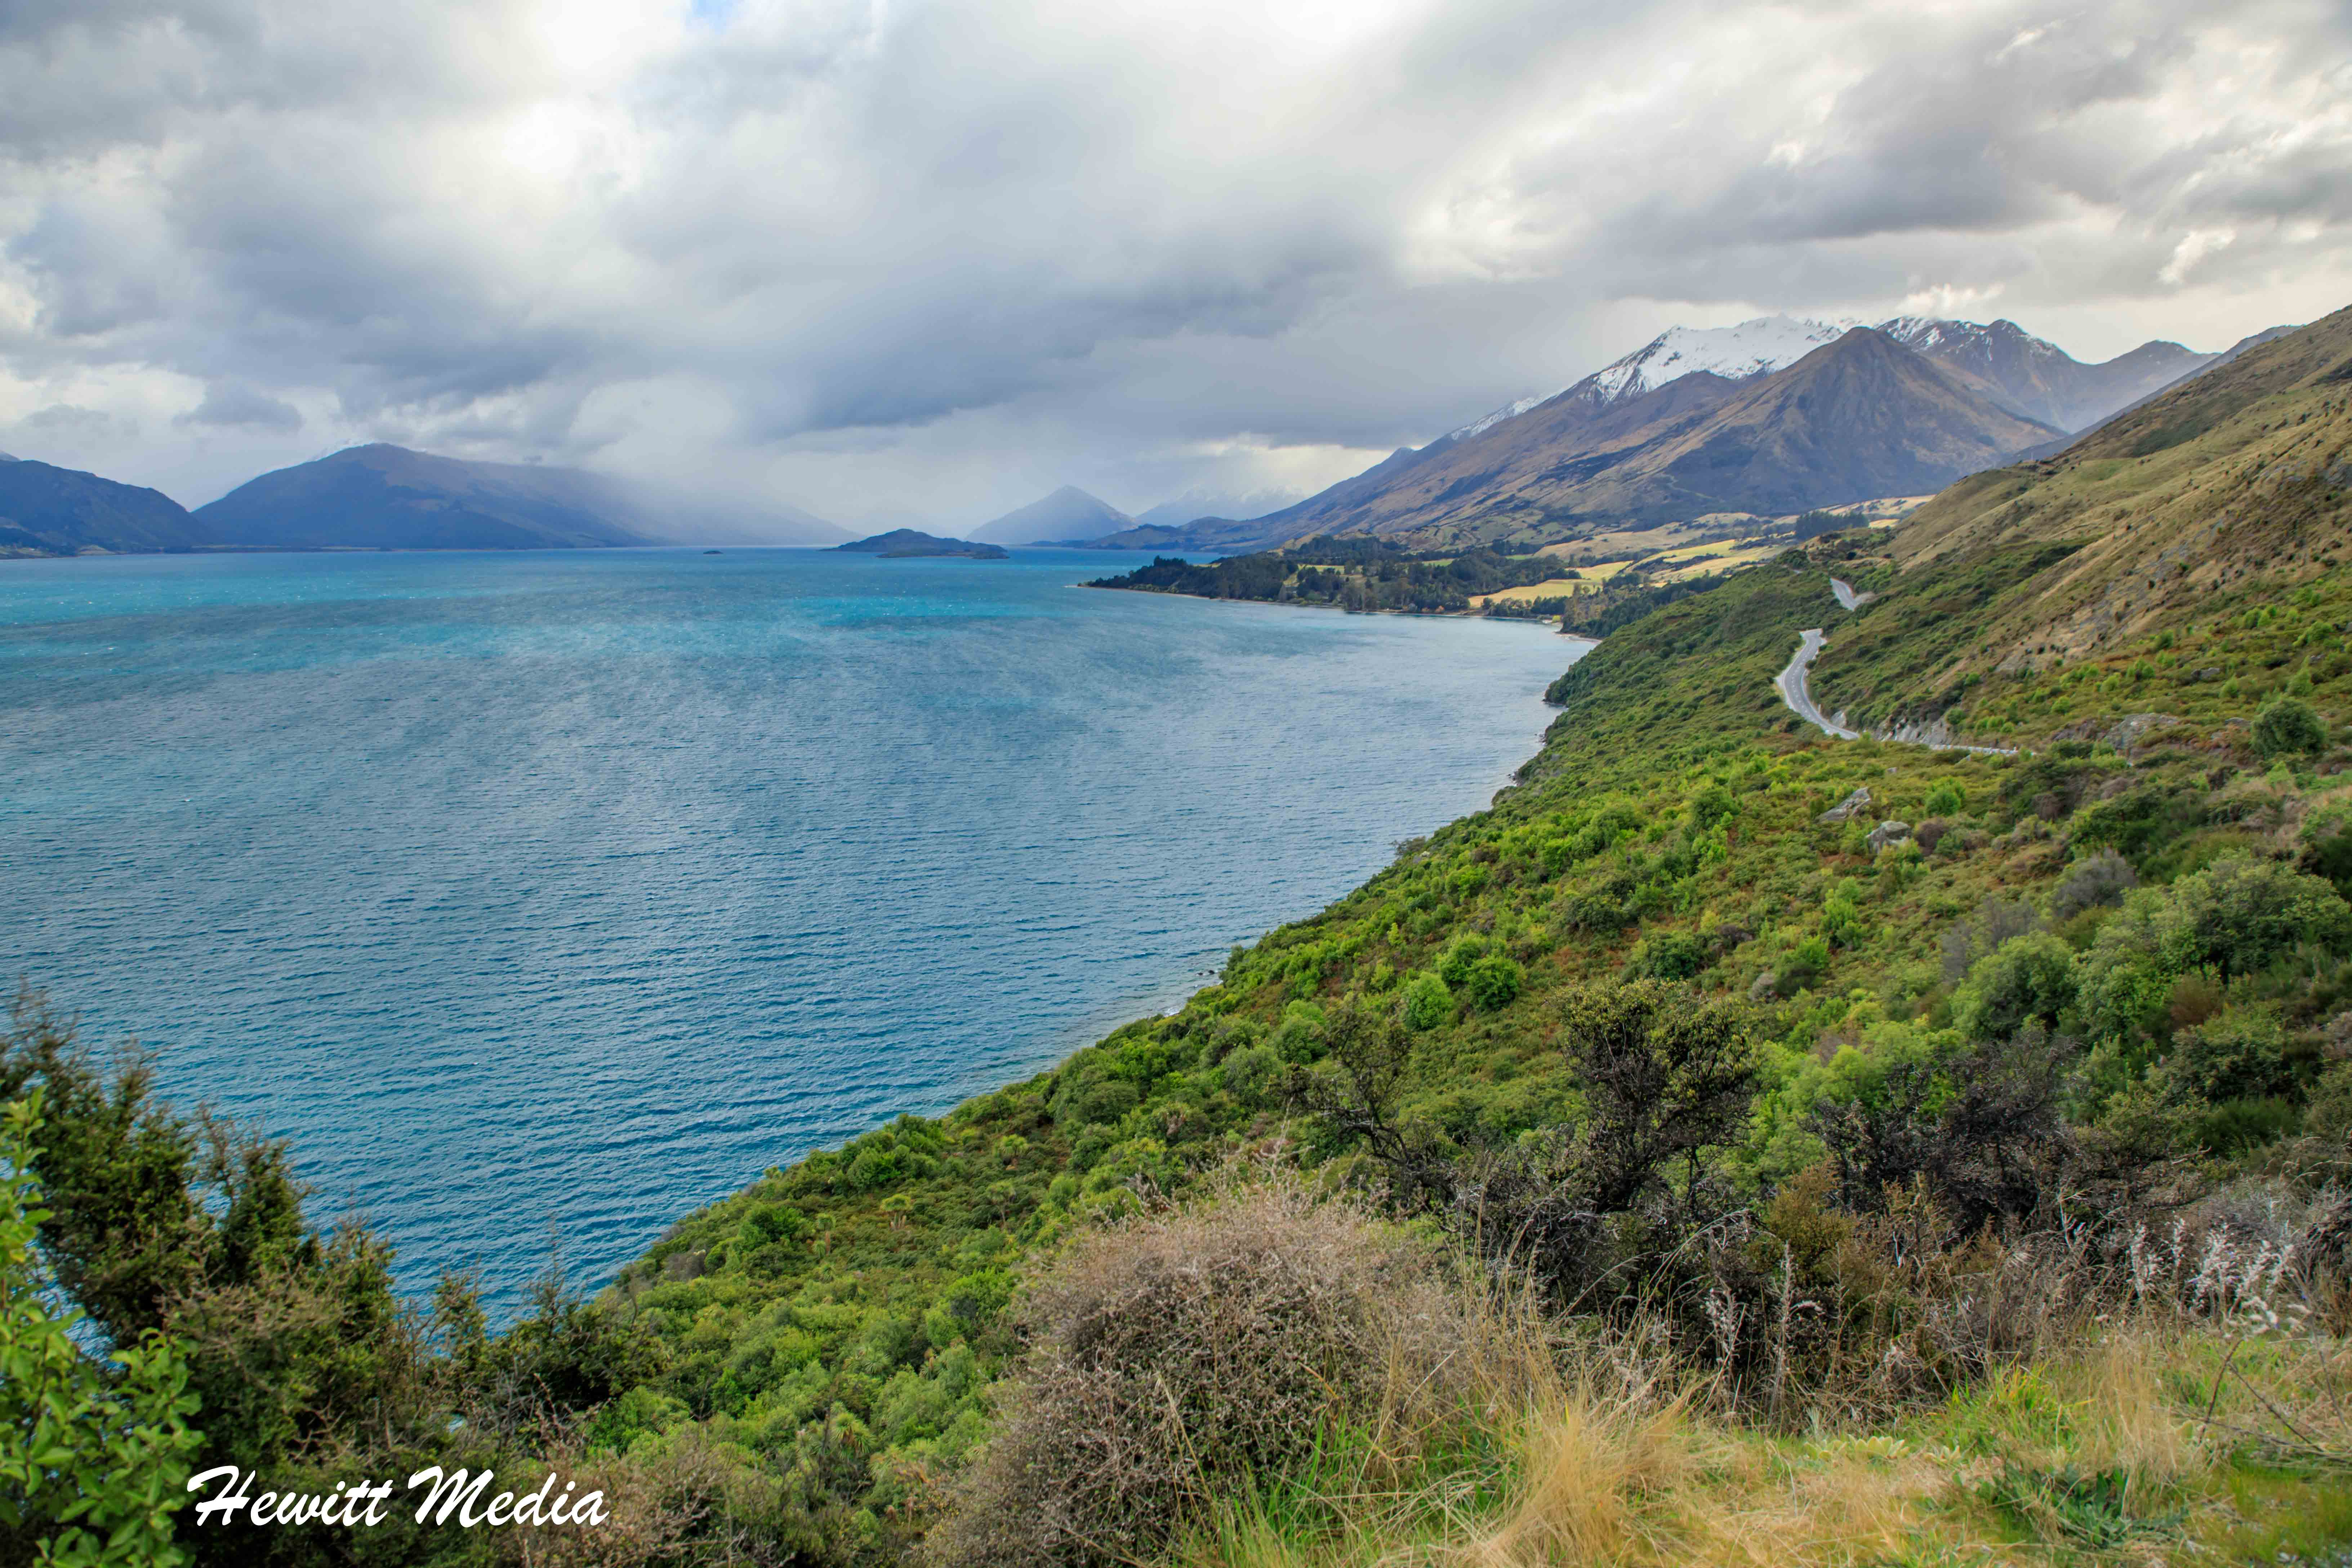 The Road to Glenorchy